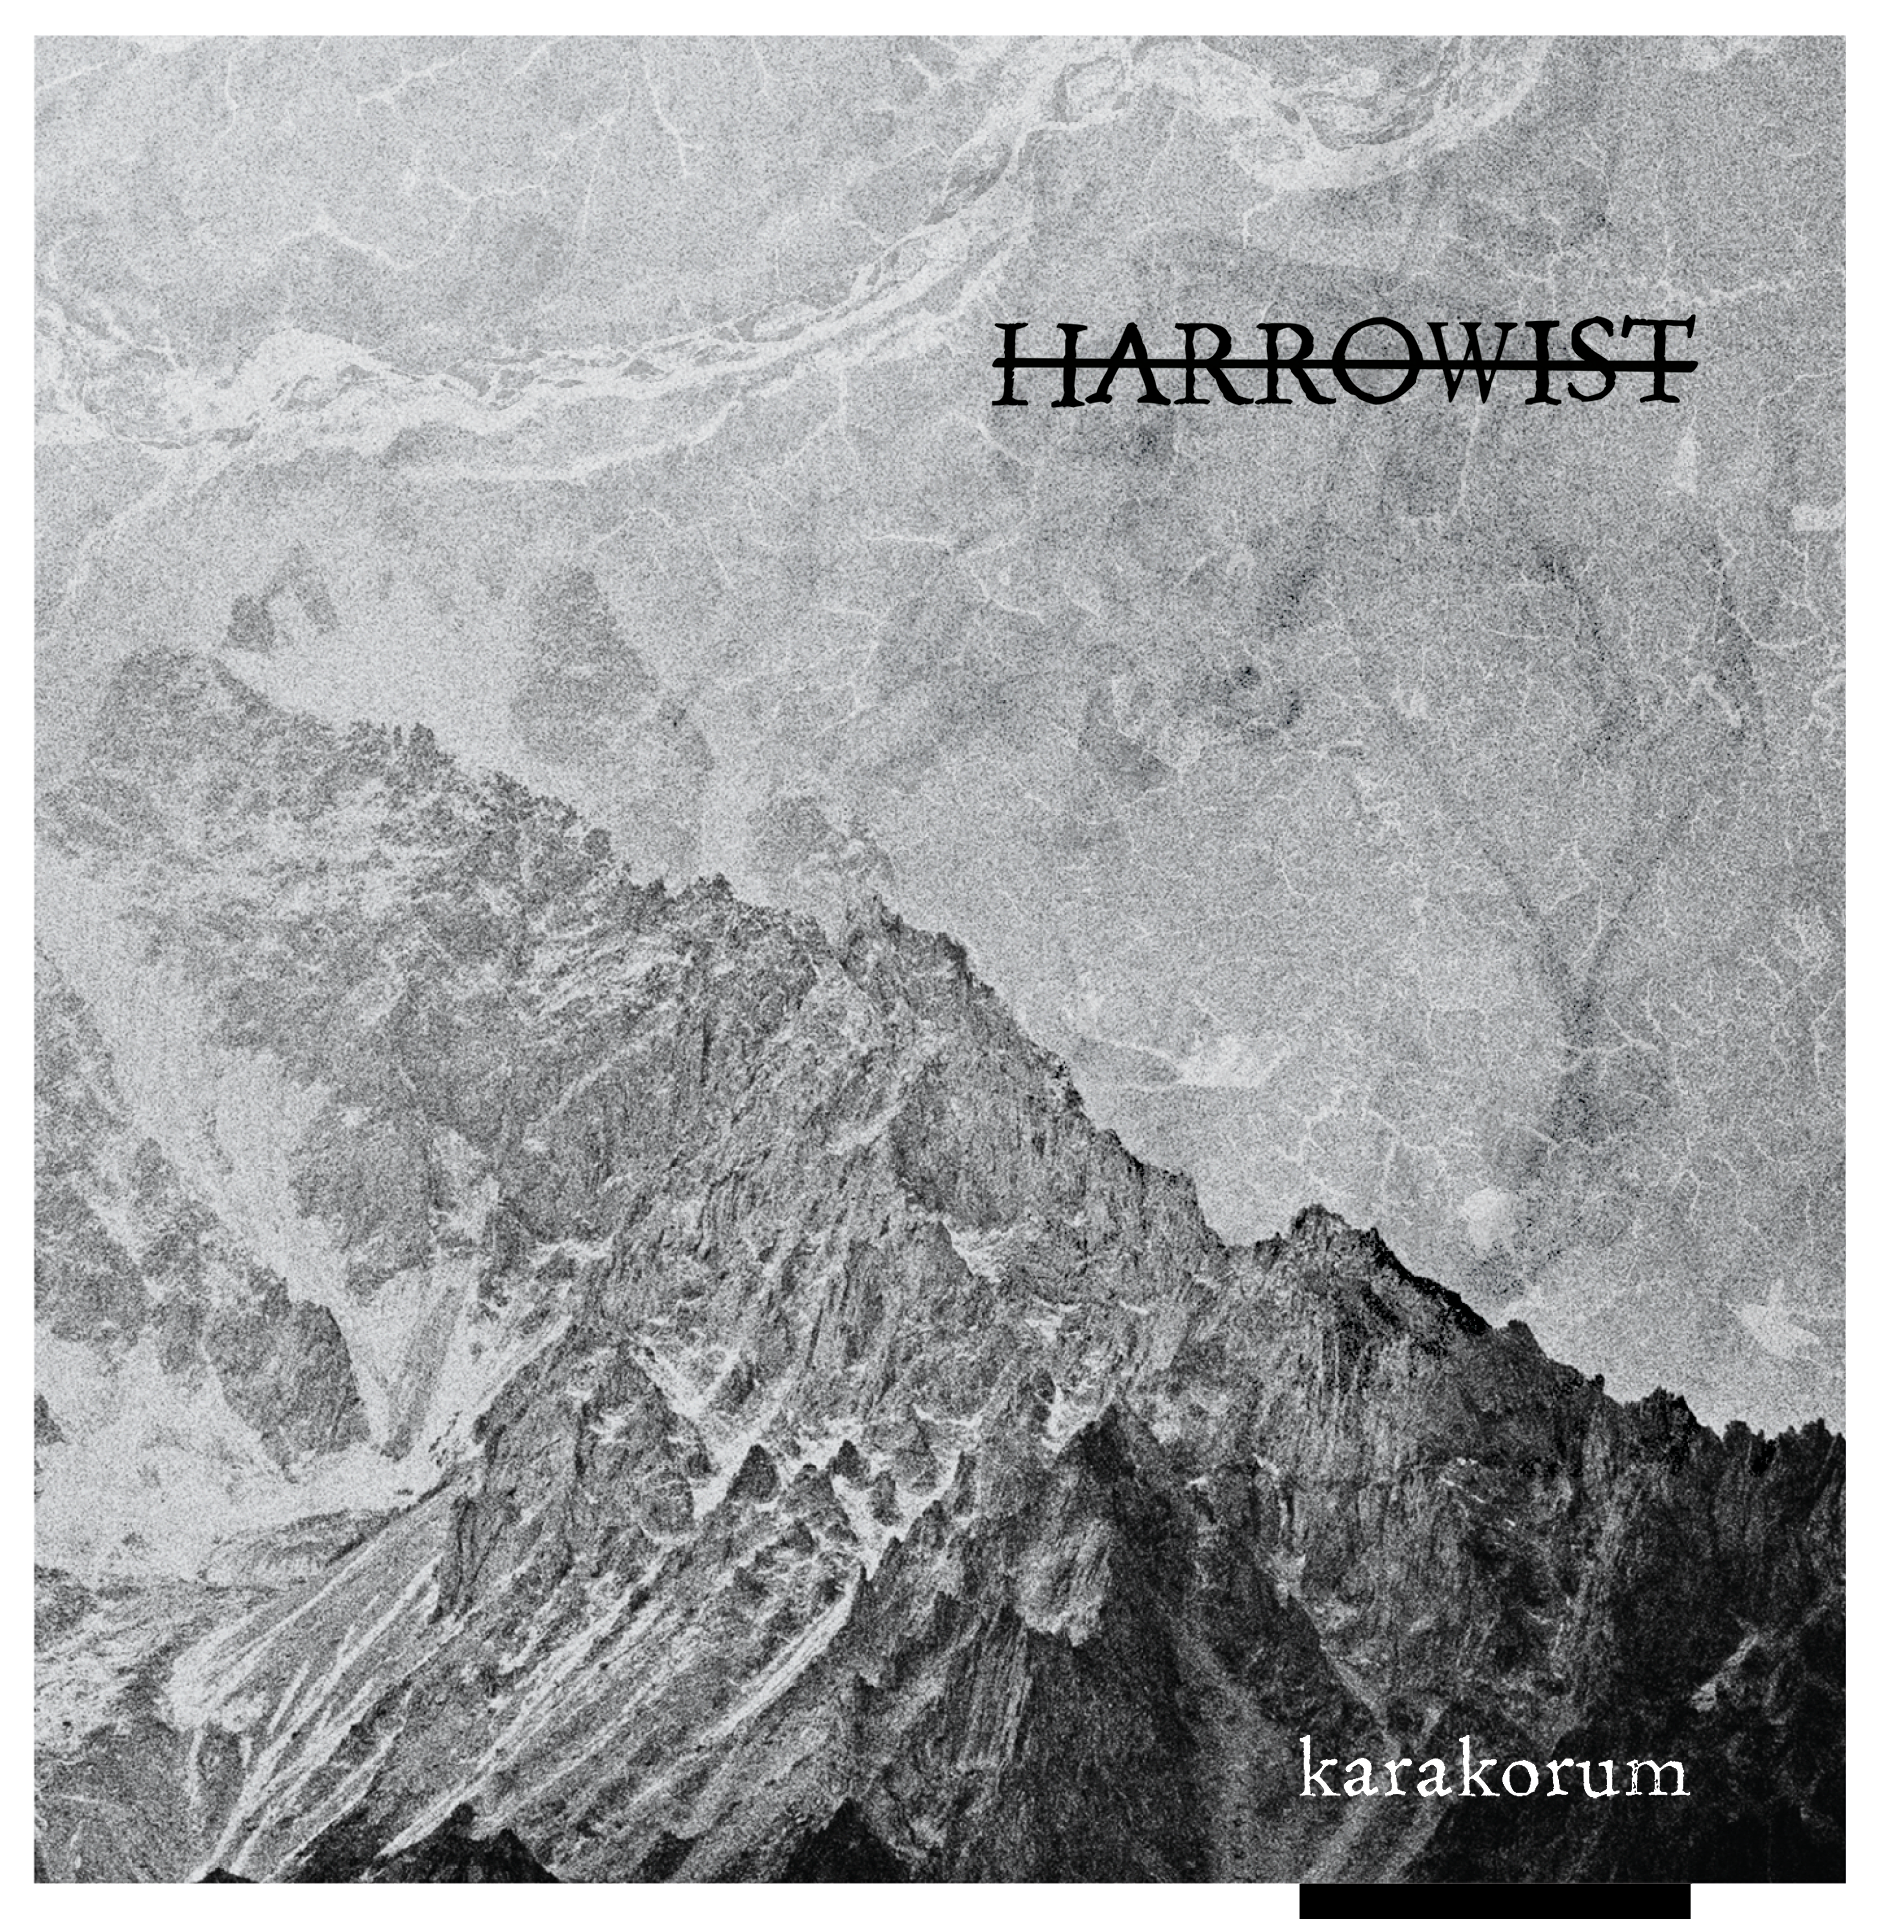 REVIEW: Harrowist – Karakorum